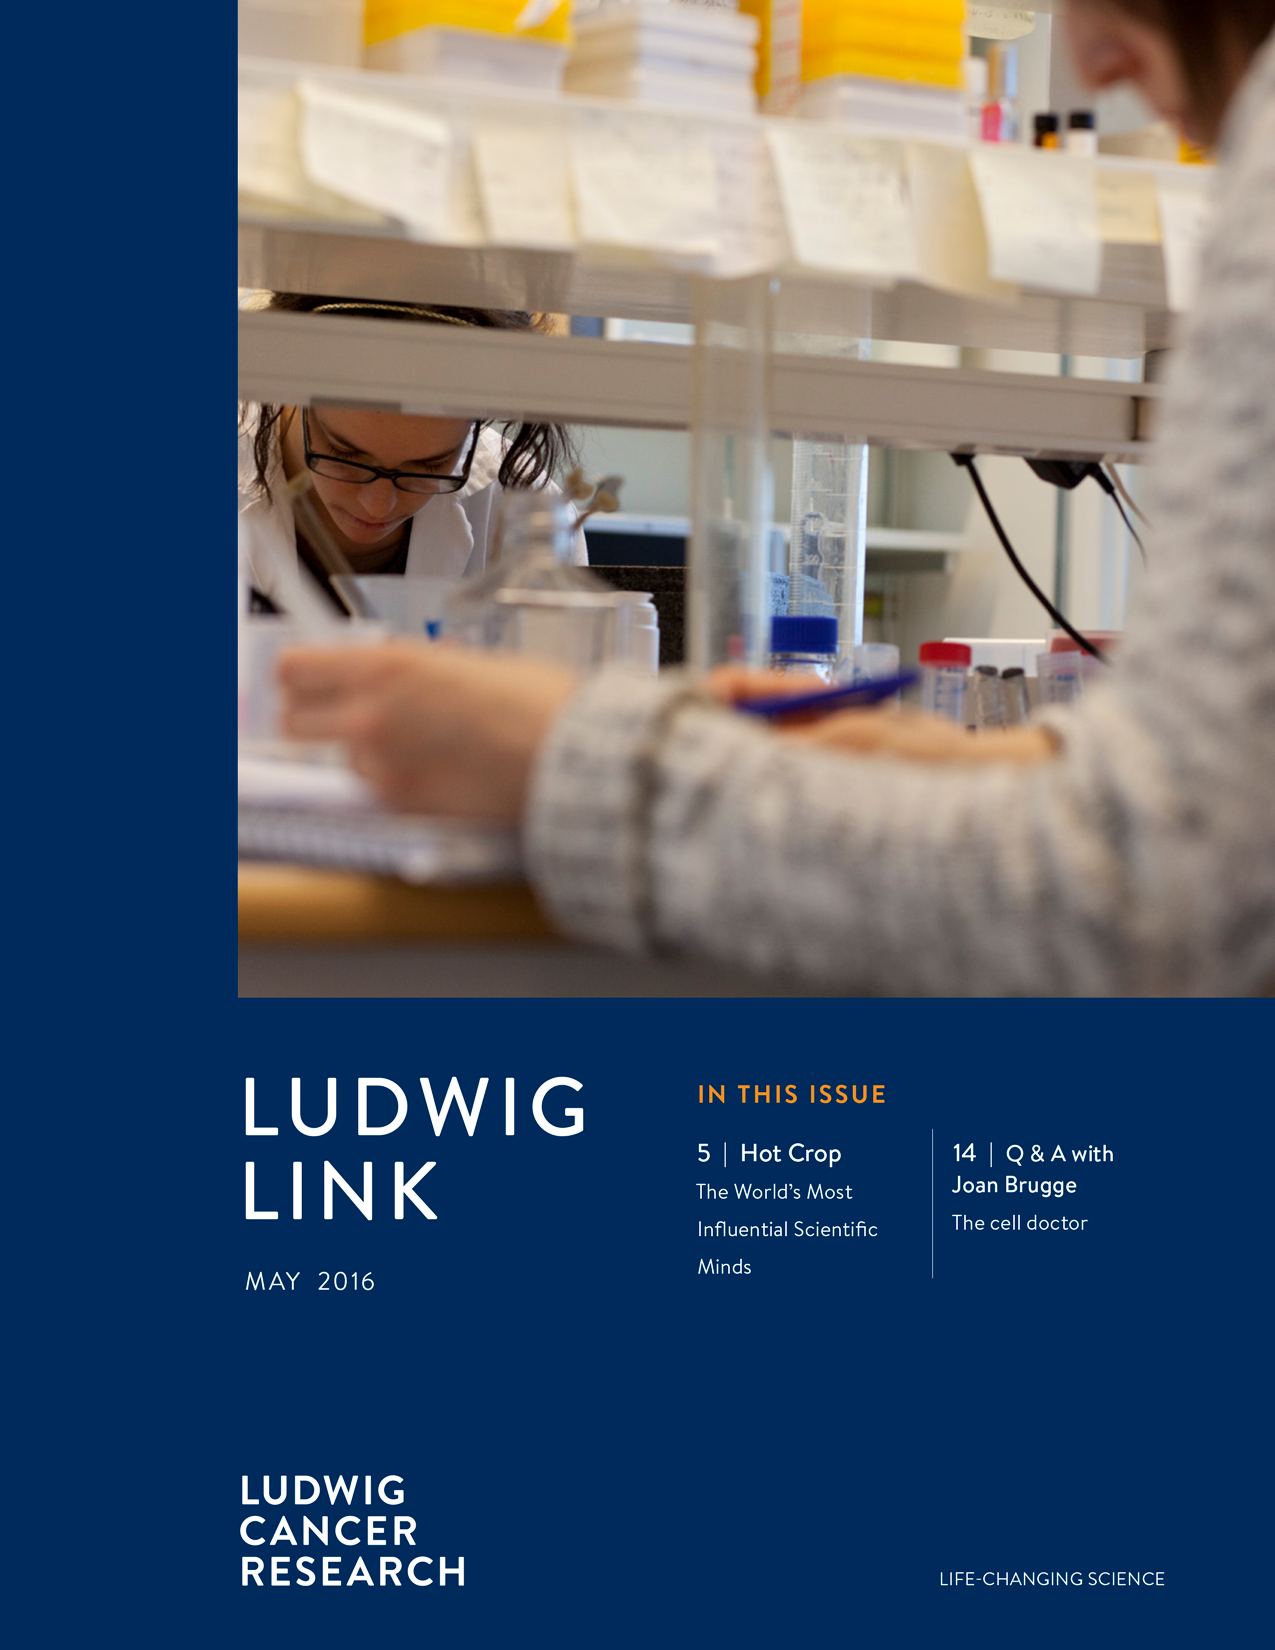 Ludwig Link May 2016 cover